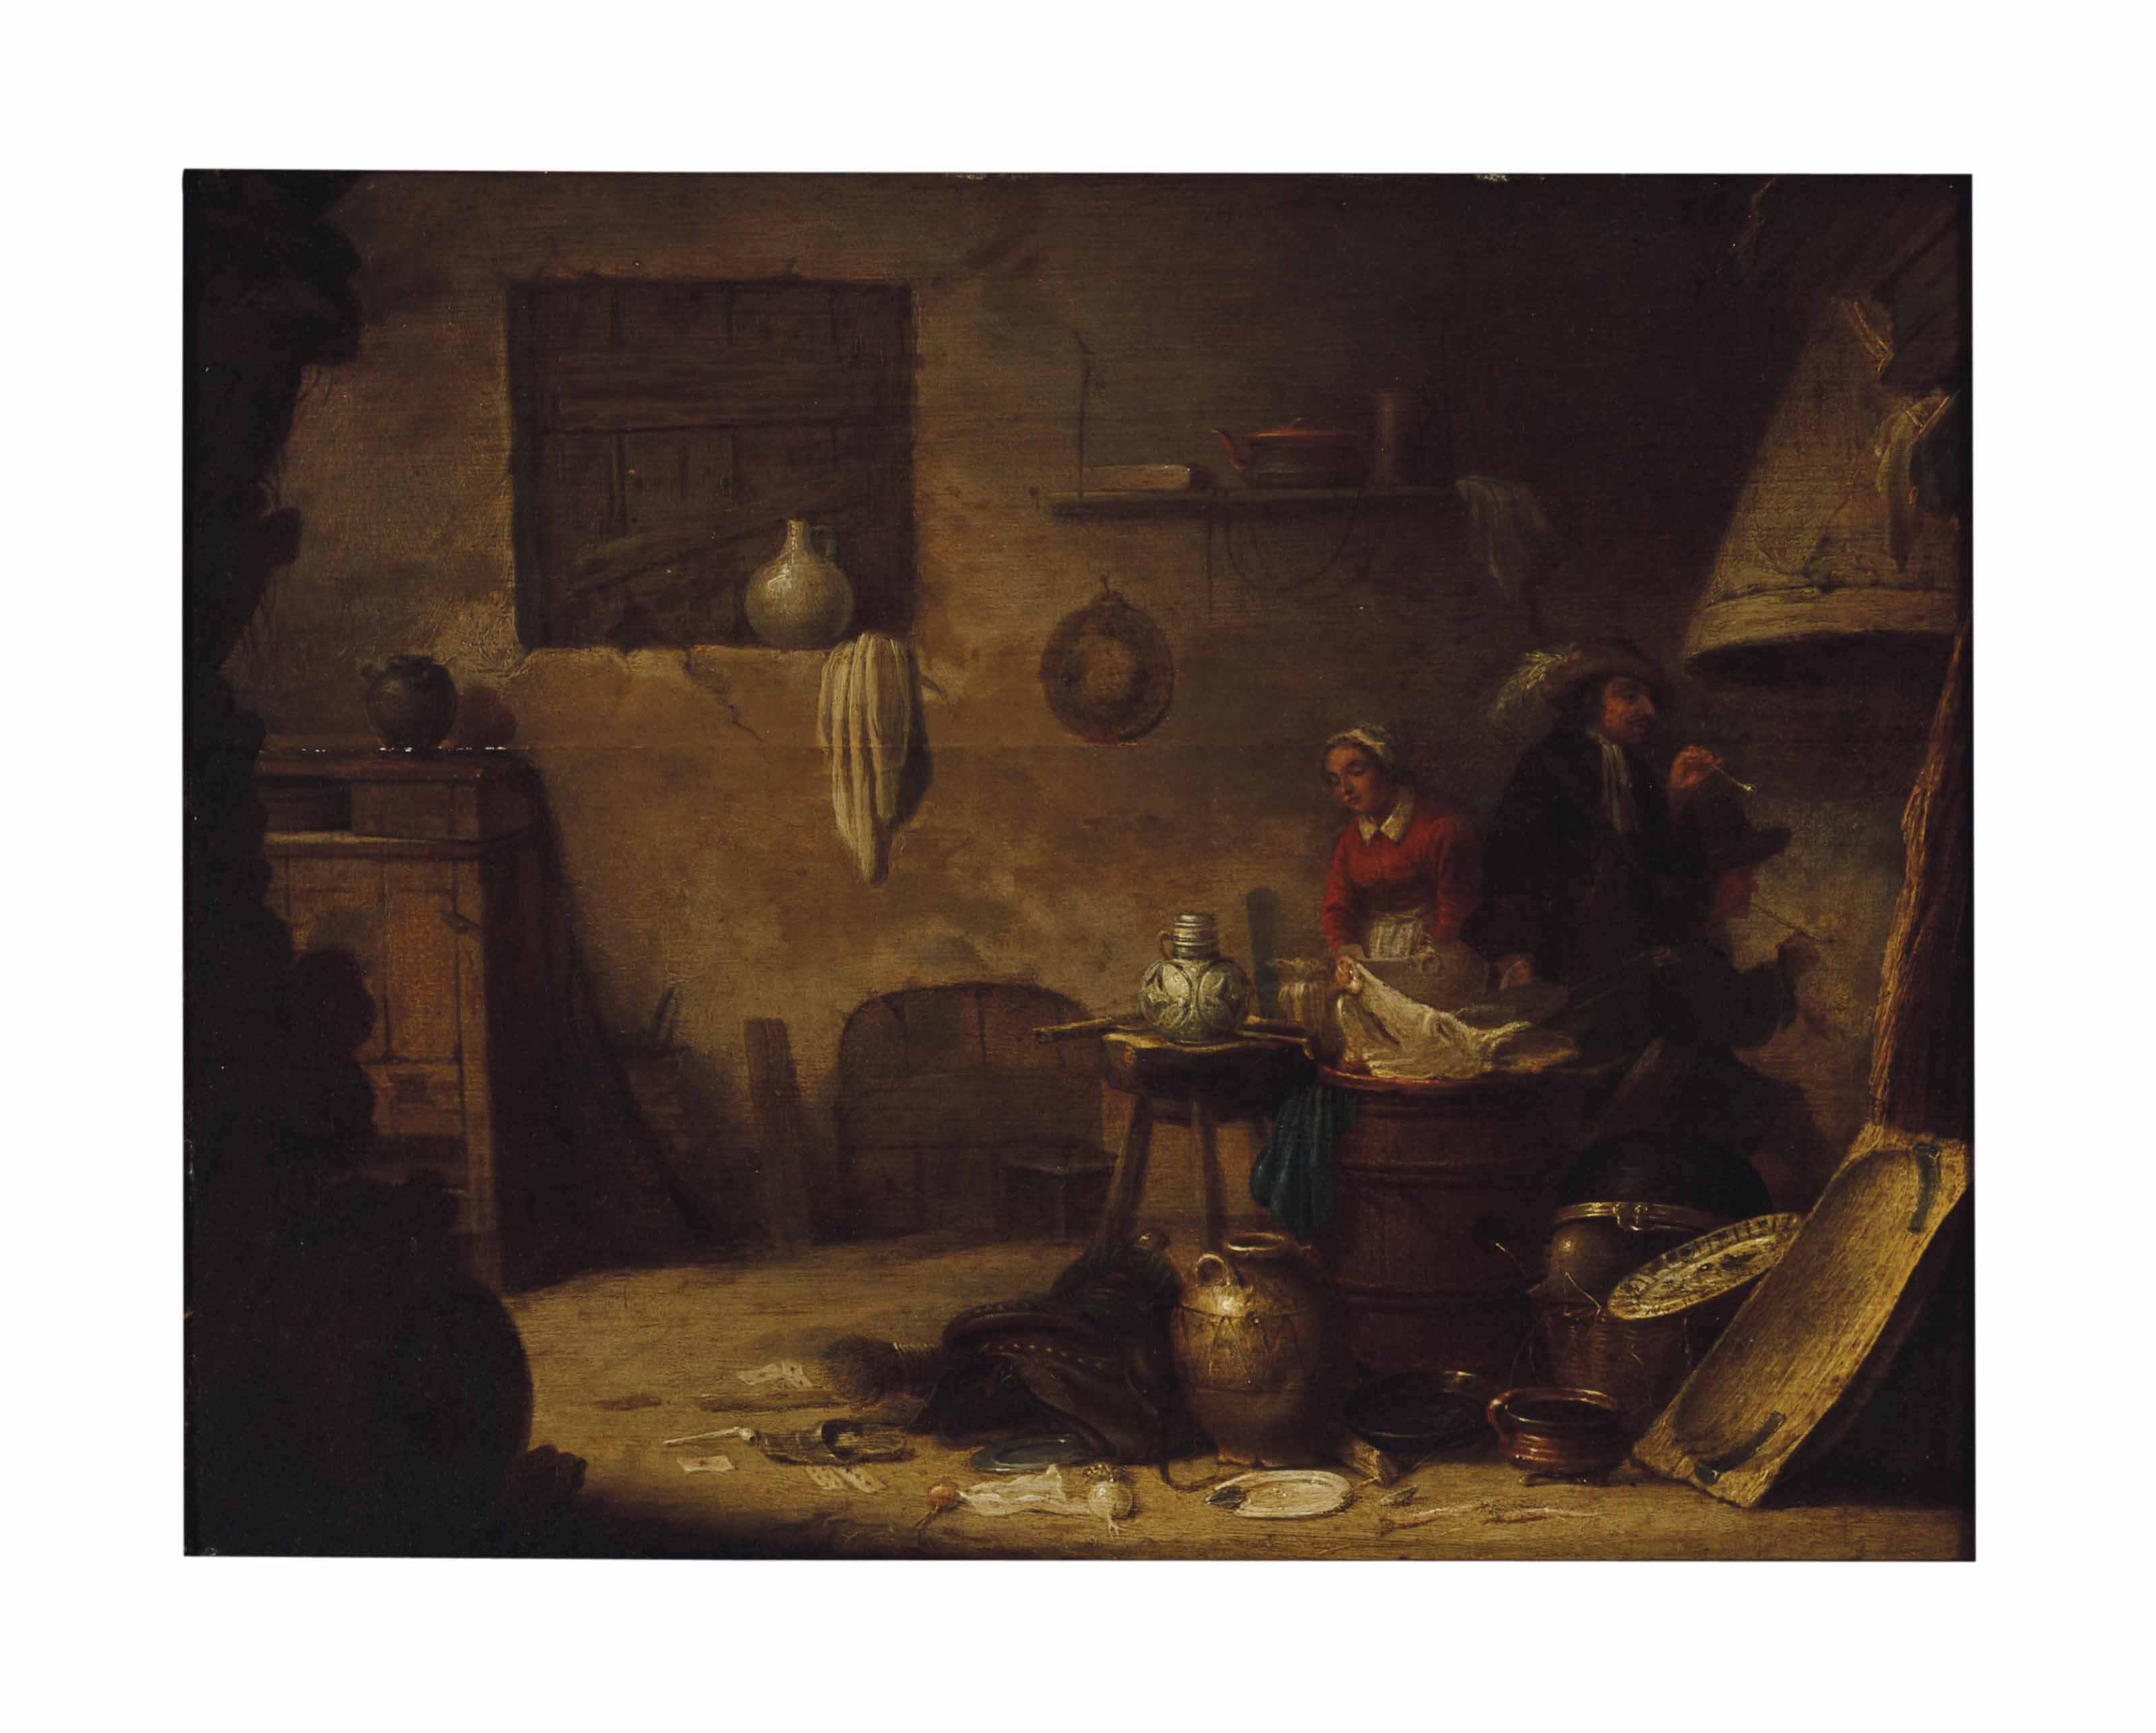 An interior with two men smoking by the fire and a washerwoman